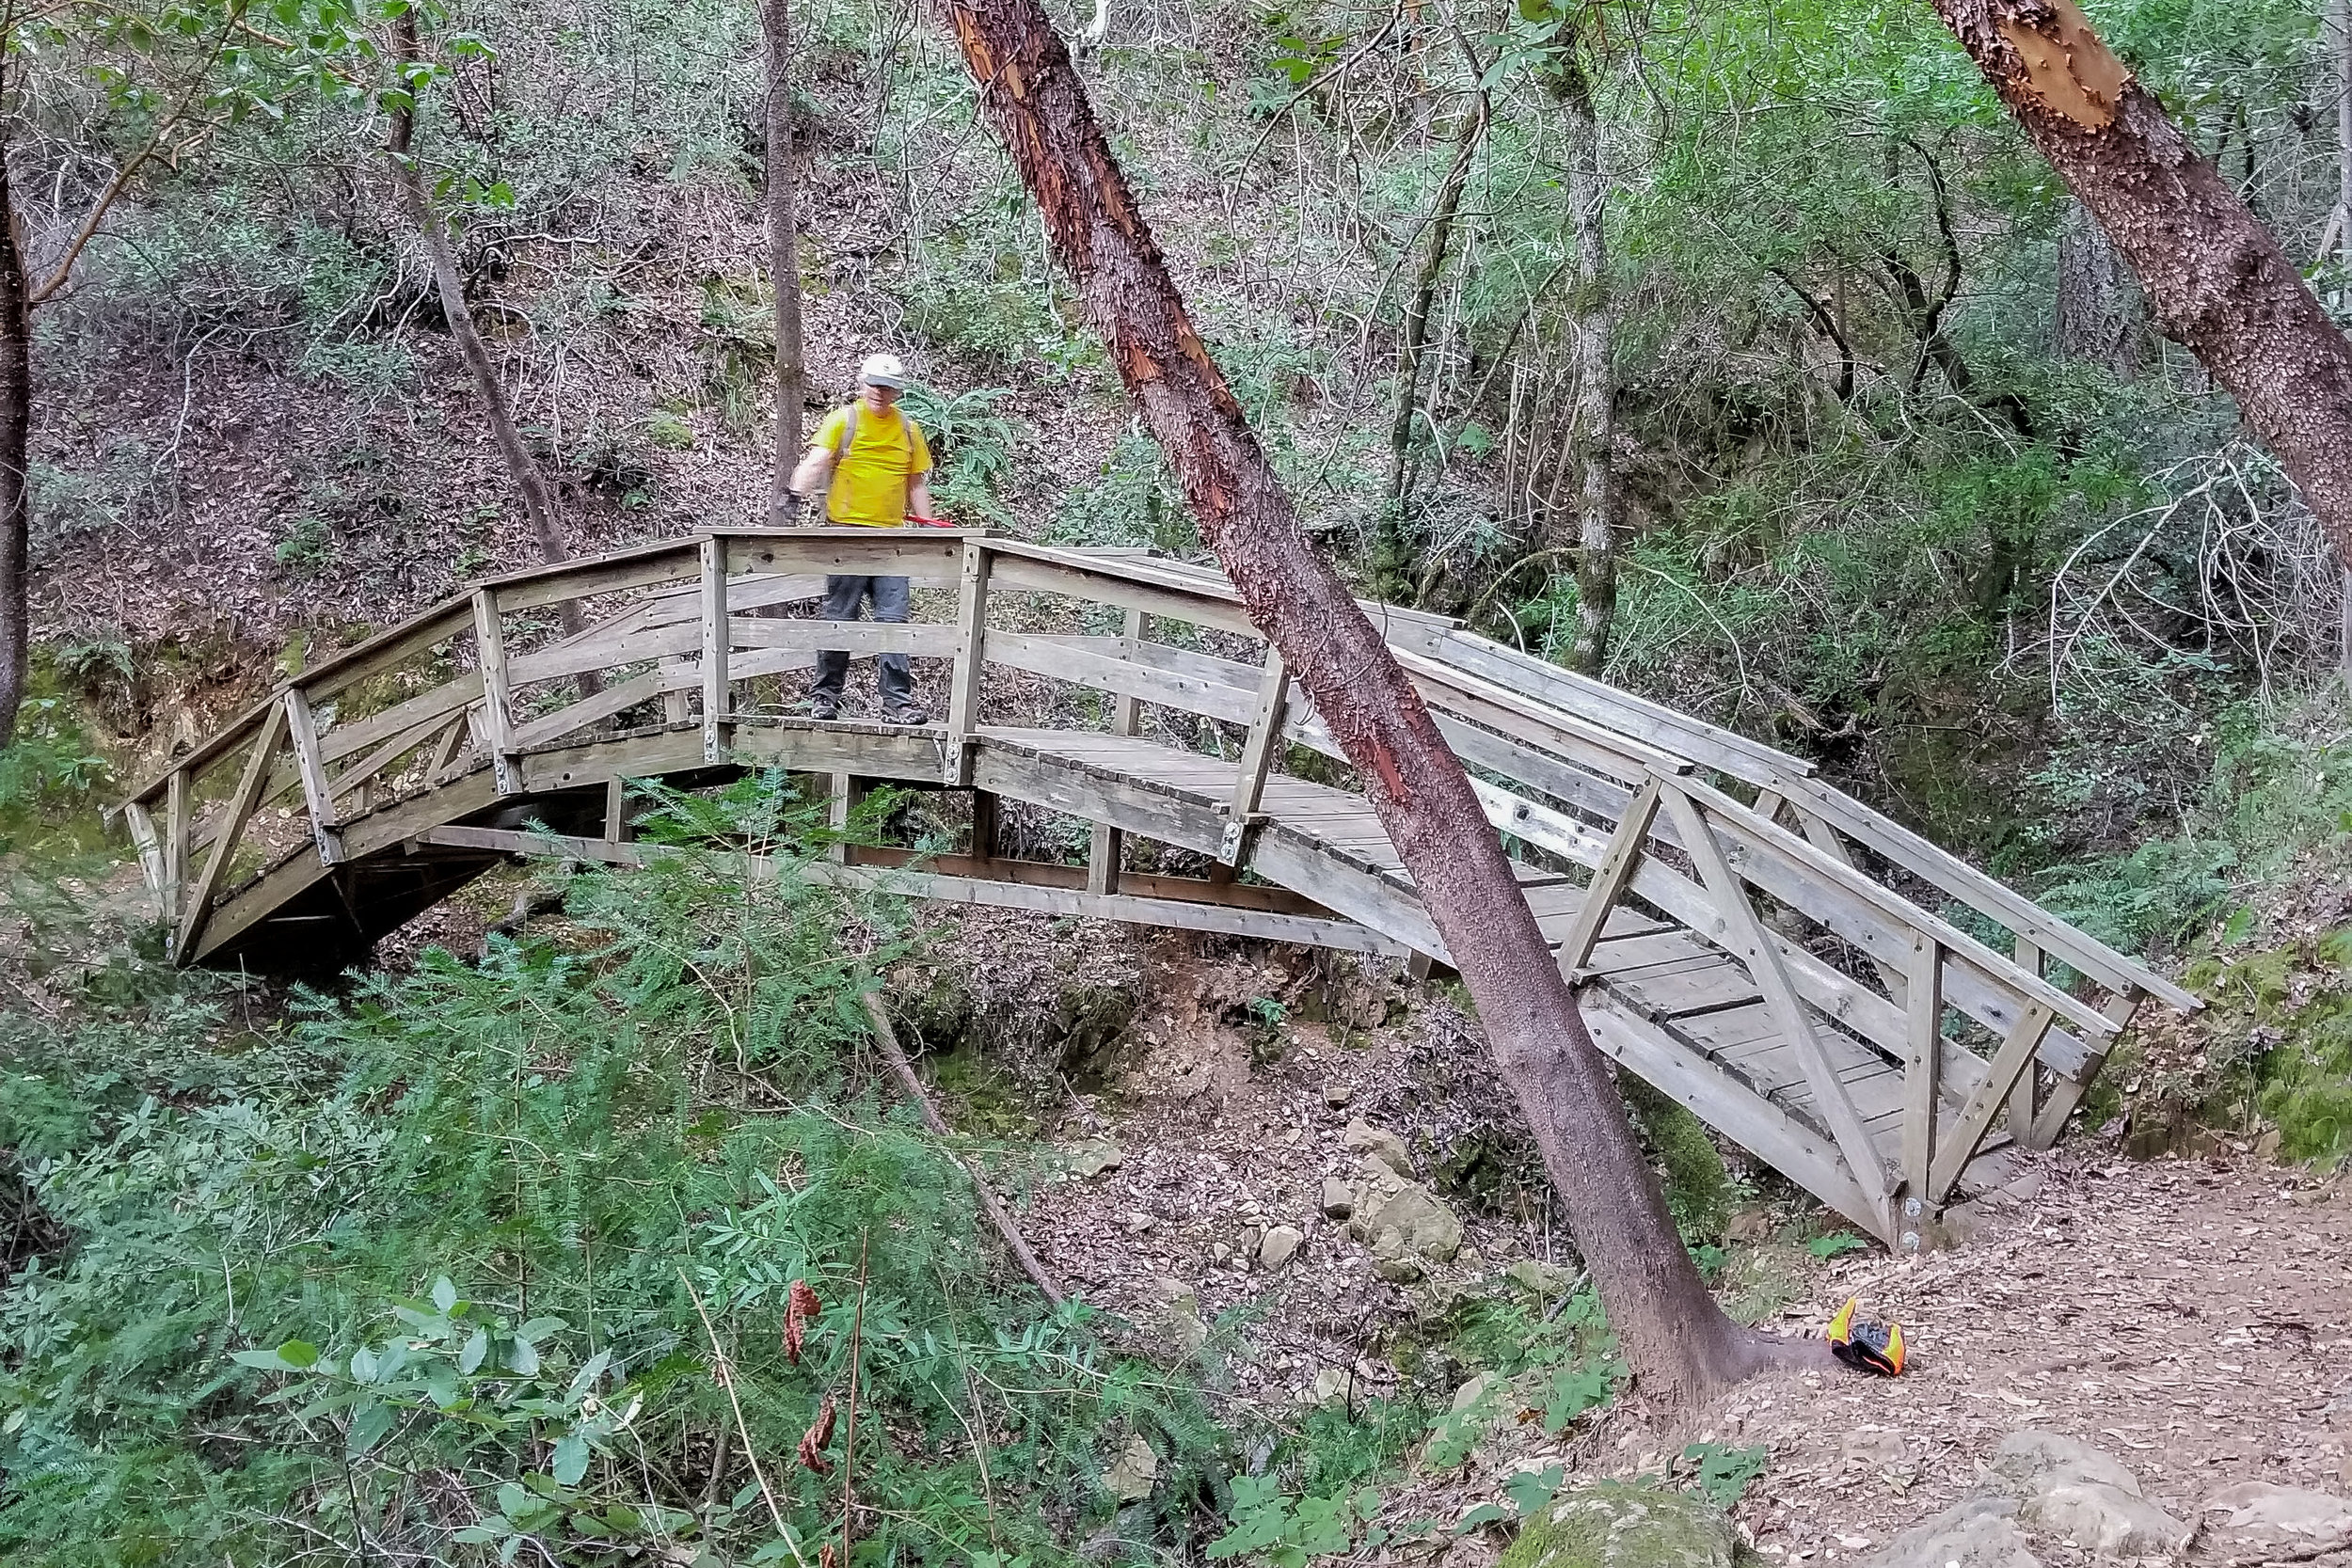 Eagle Rock Bridge built by the Trail Crew almost 30 years ago in 1989.